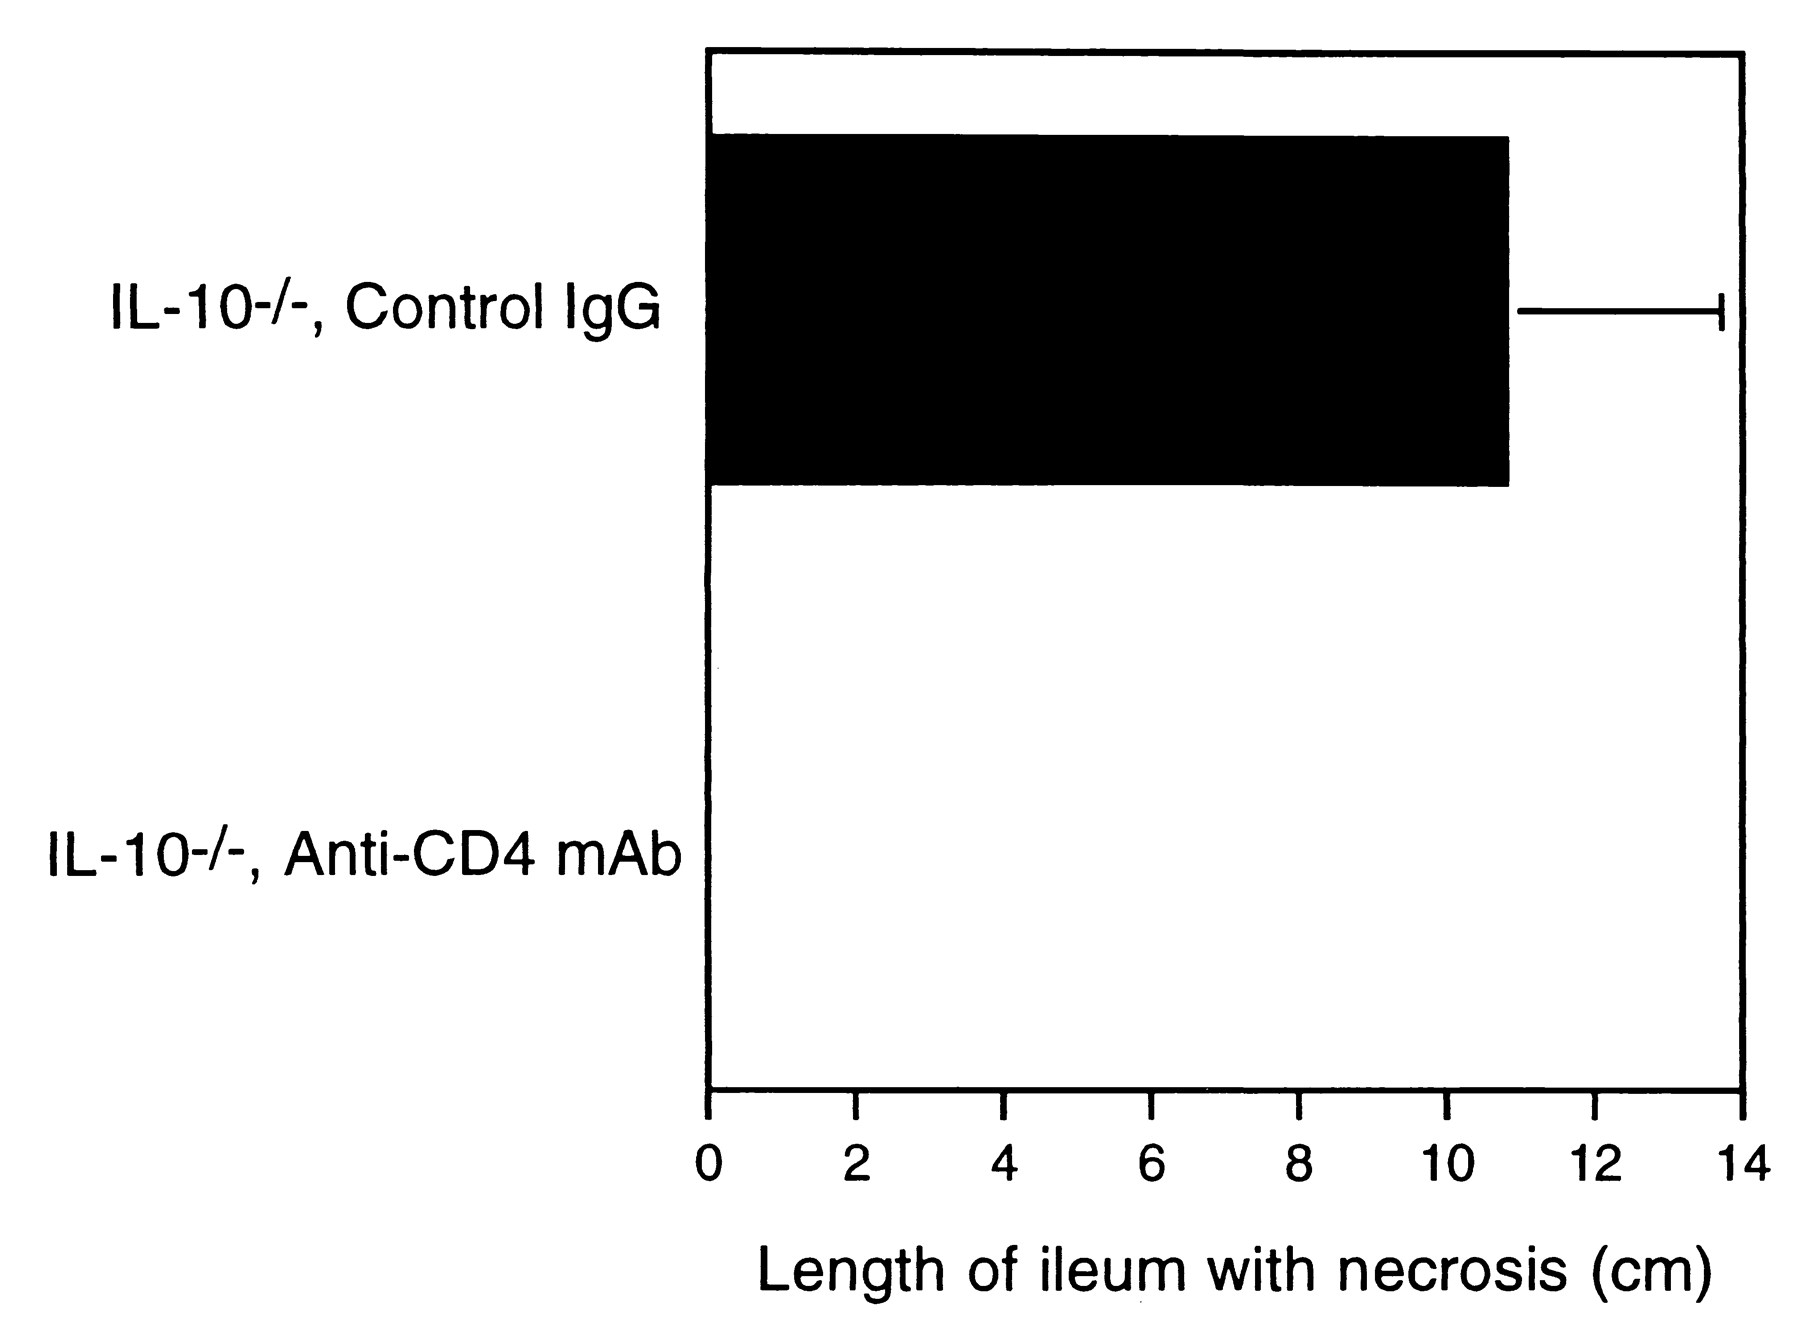 Il 10 Is Required For Prevention Of Necrosis In The Small Intestine